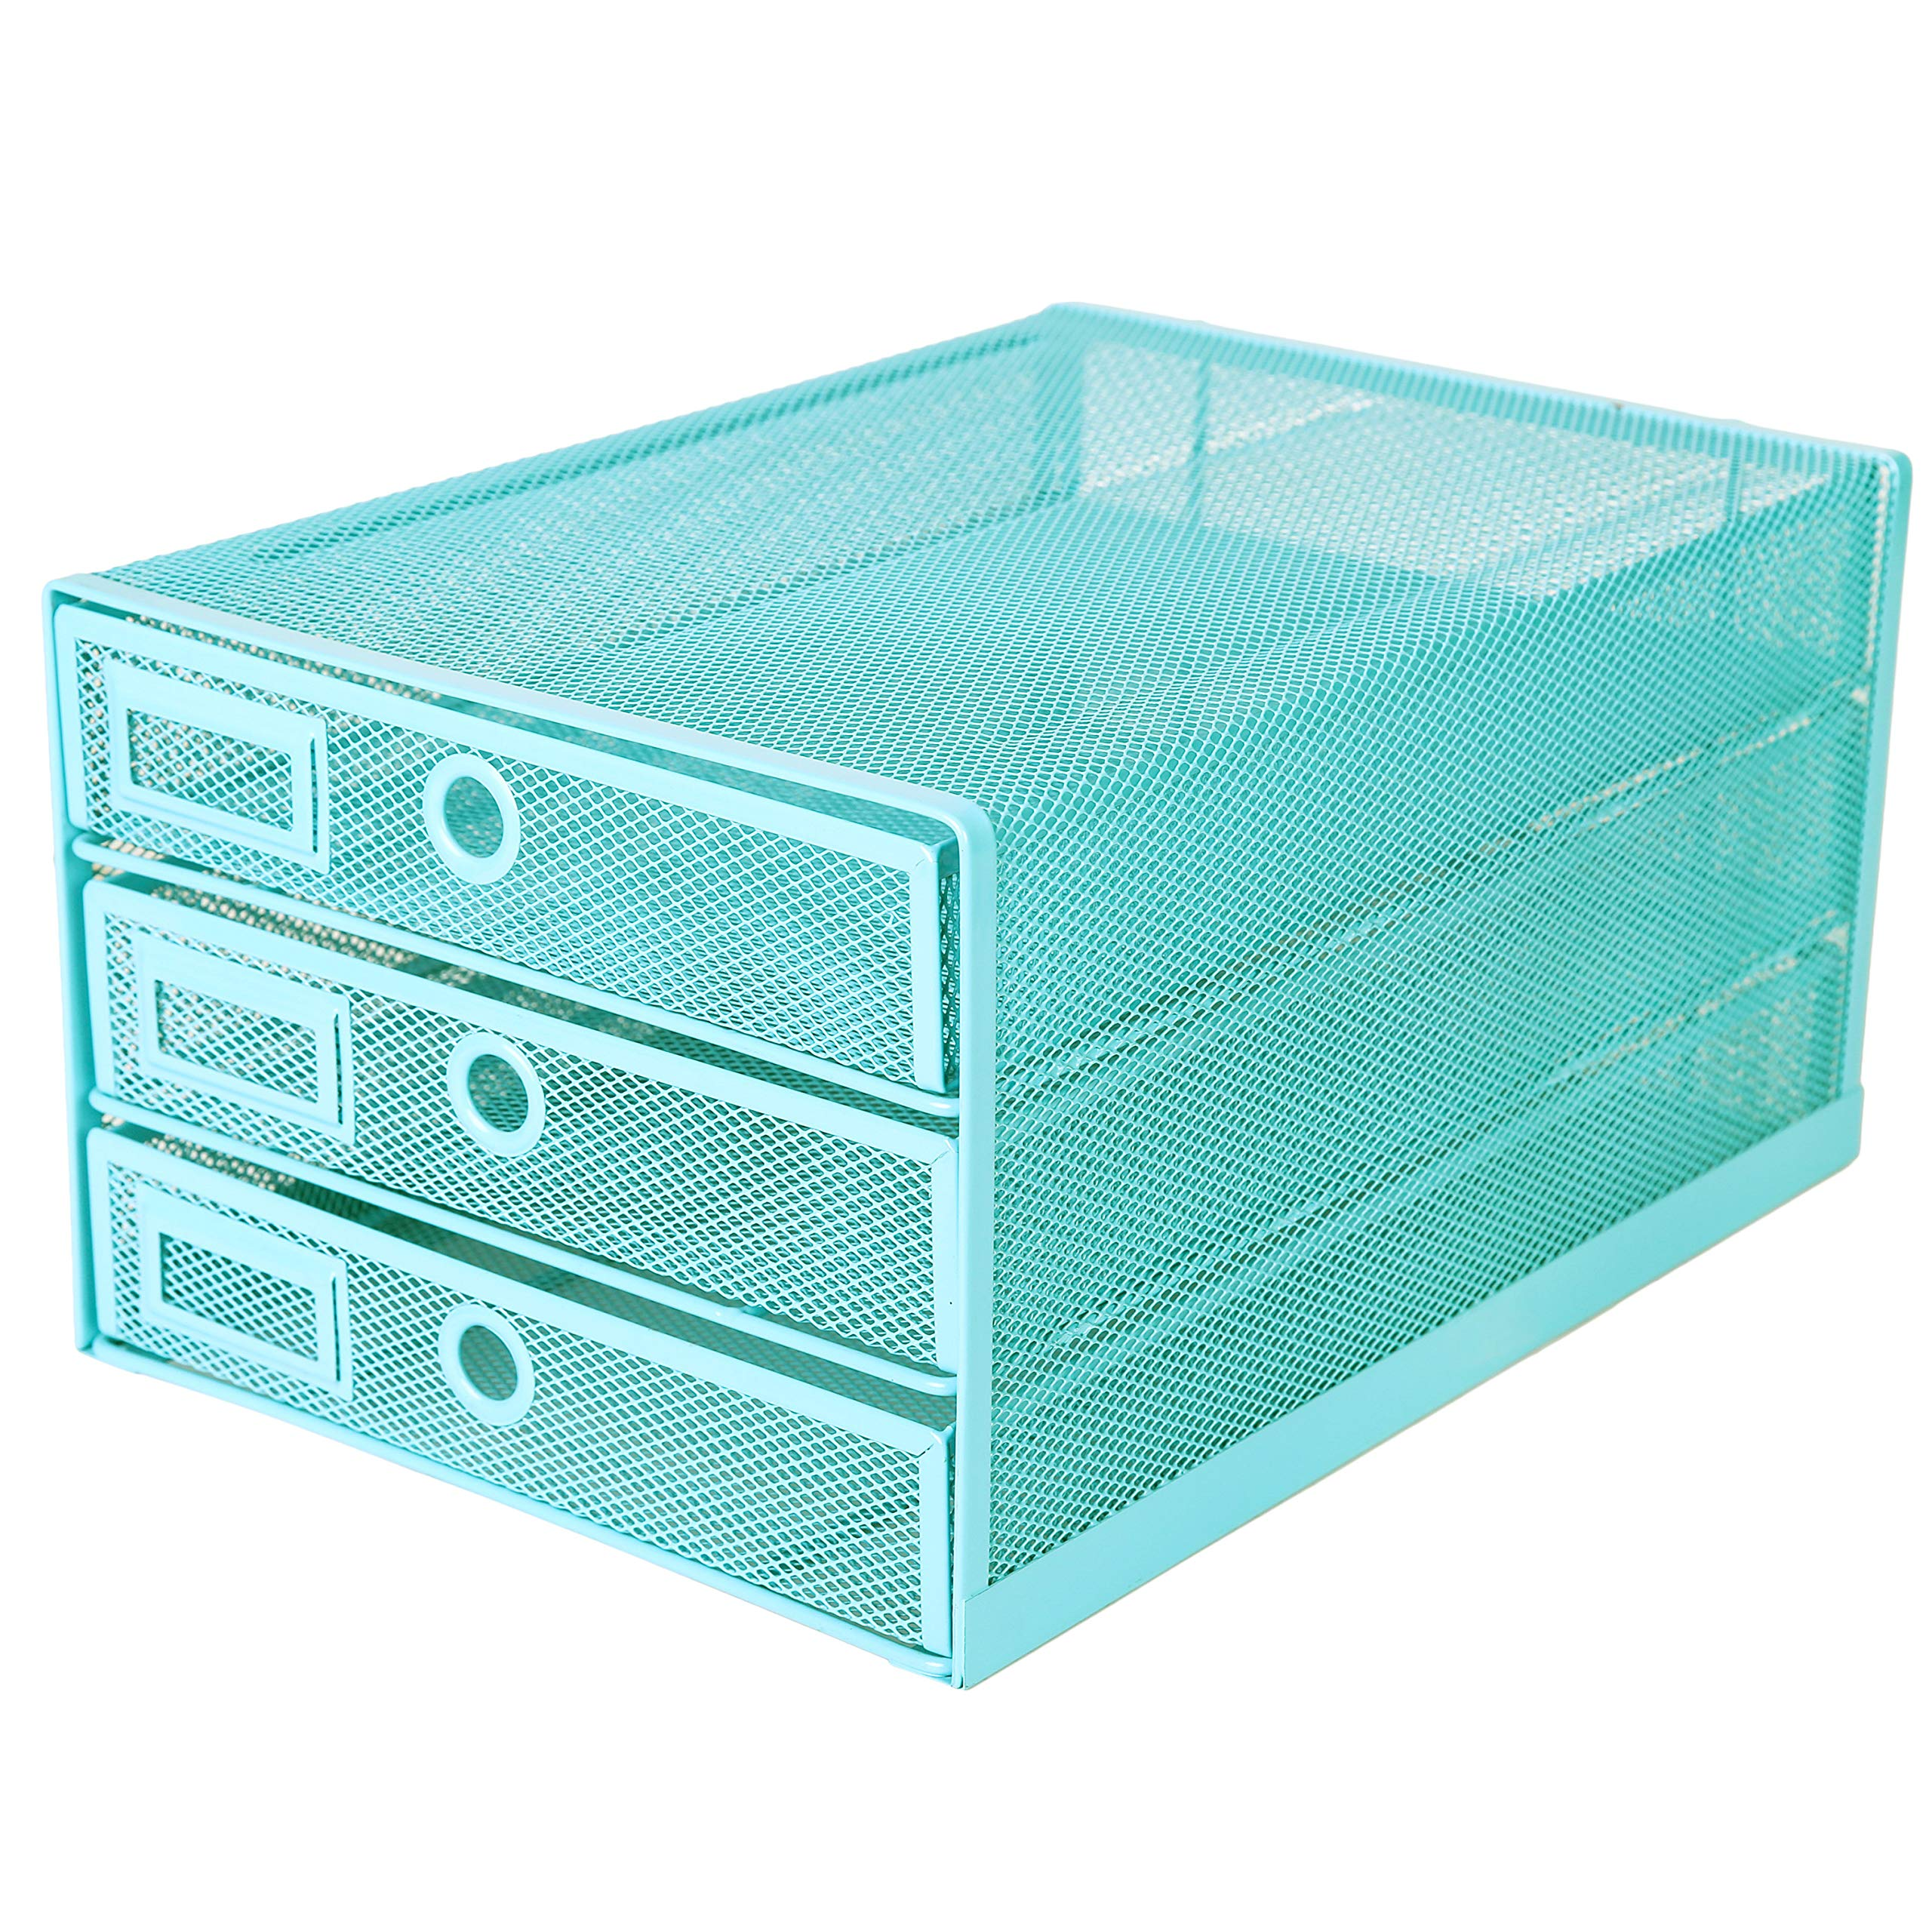 Exerz Desk Organizer Wire Mesh 3 Tier Sliding Drawers Paper Sorter/Multifunctional/Premium Solid Construction for Letters, Documents, Mail, Files, Paper, Kids' Art Supplies (Turquoise/Blue/Teal)